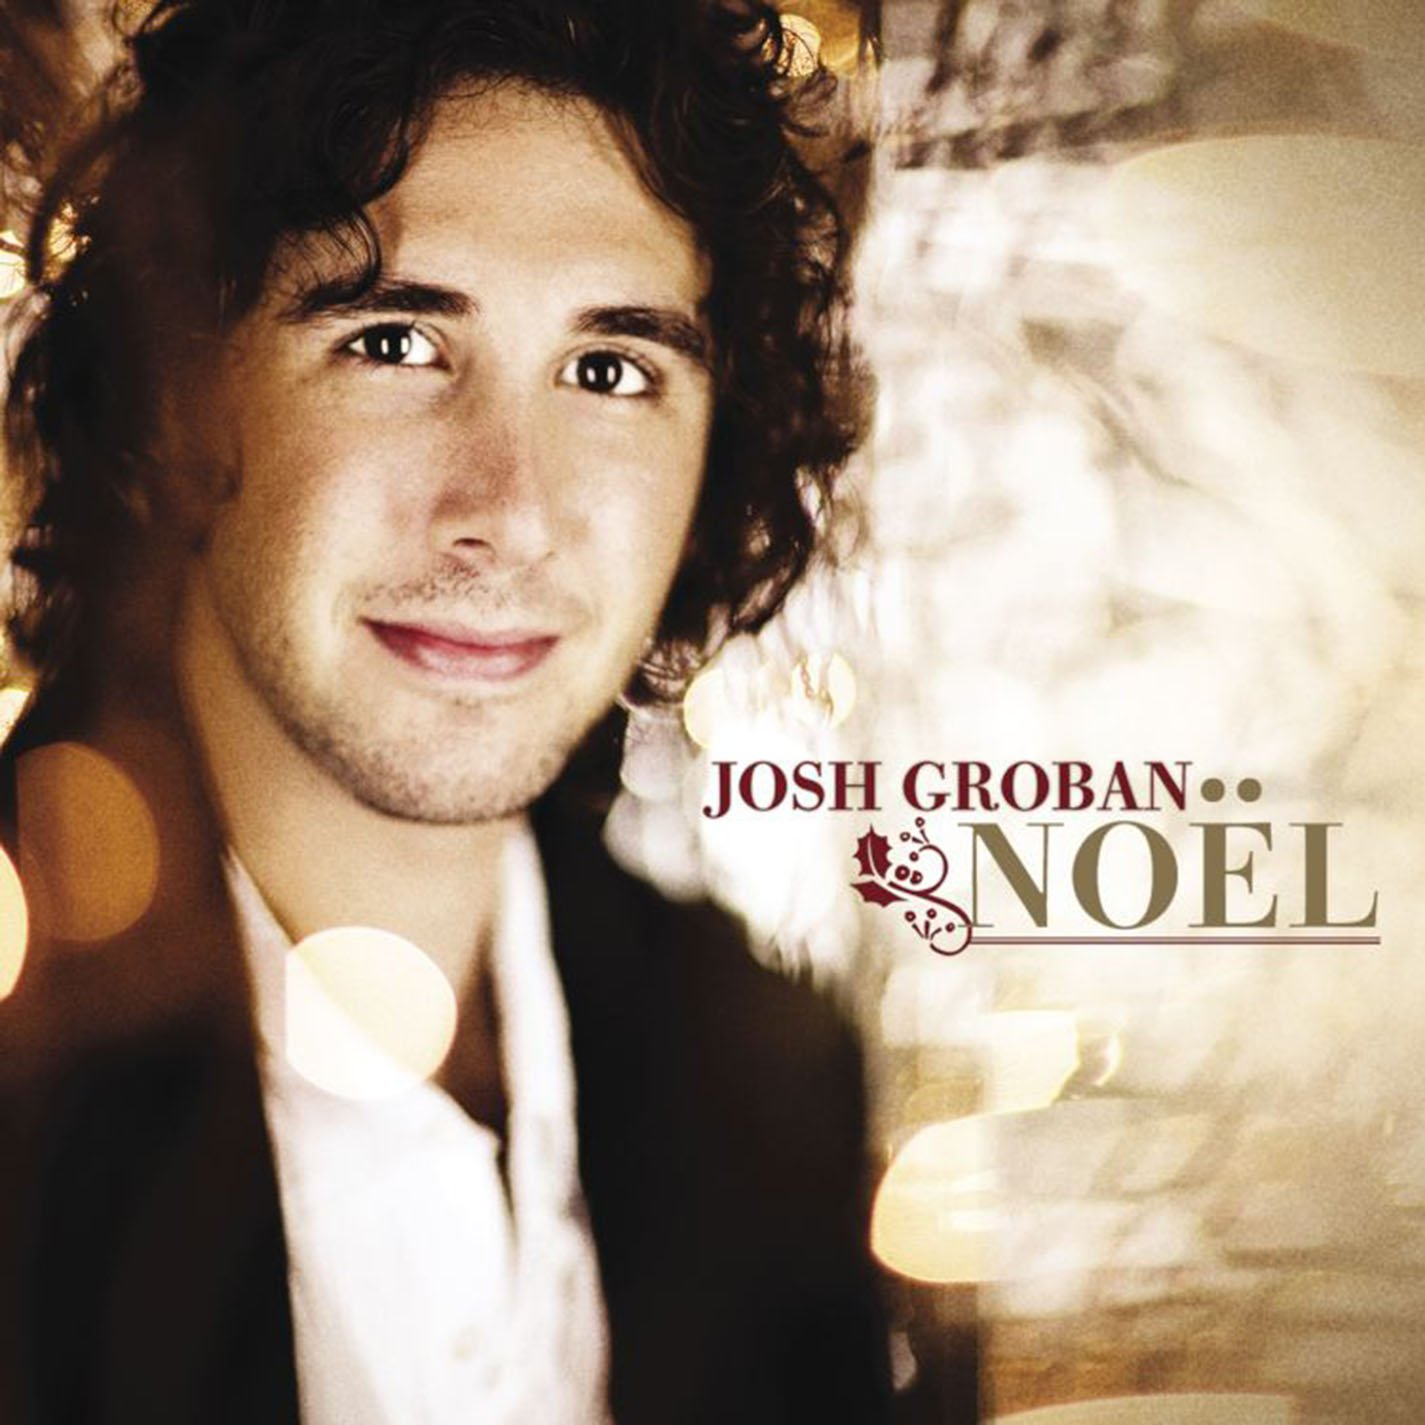 Josh Groban - Noel - Amazon.com Music